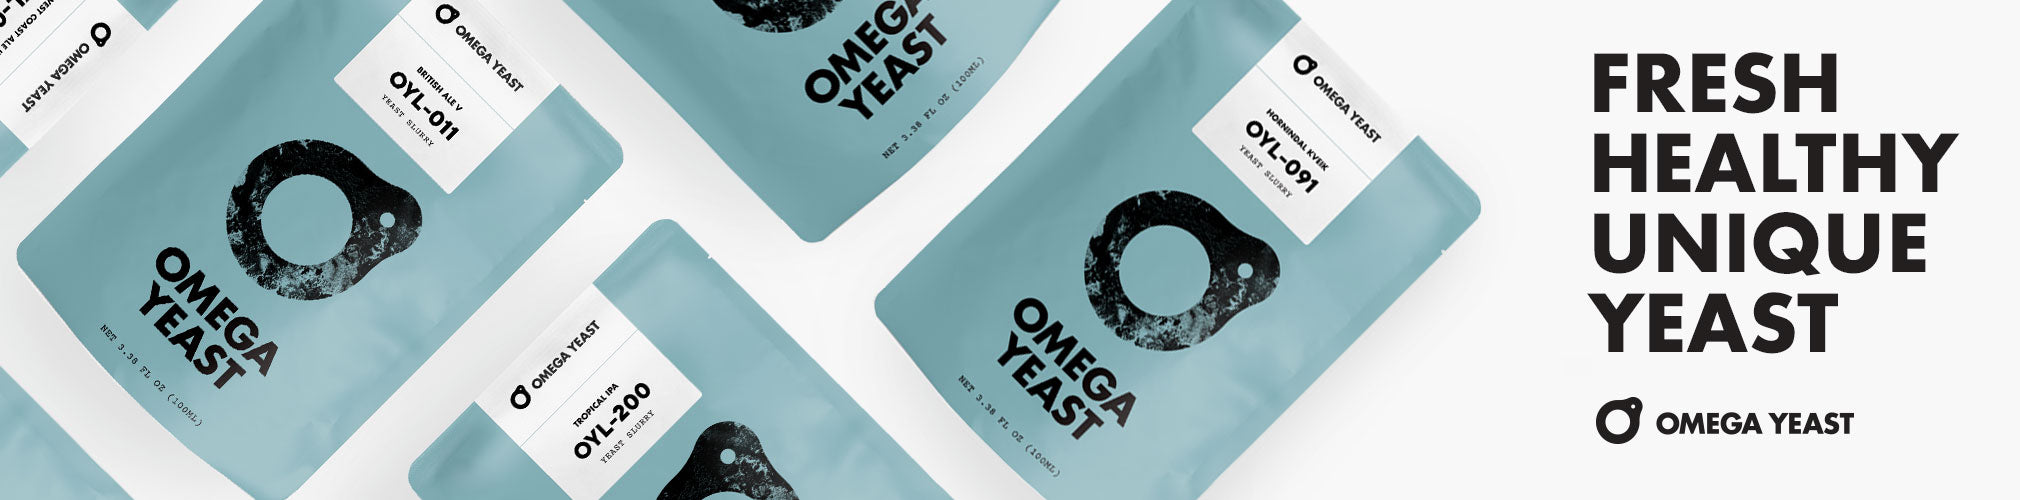 Omega Yeast Liquid Yeast Collection Page Banner